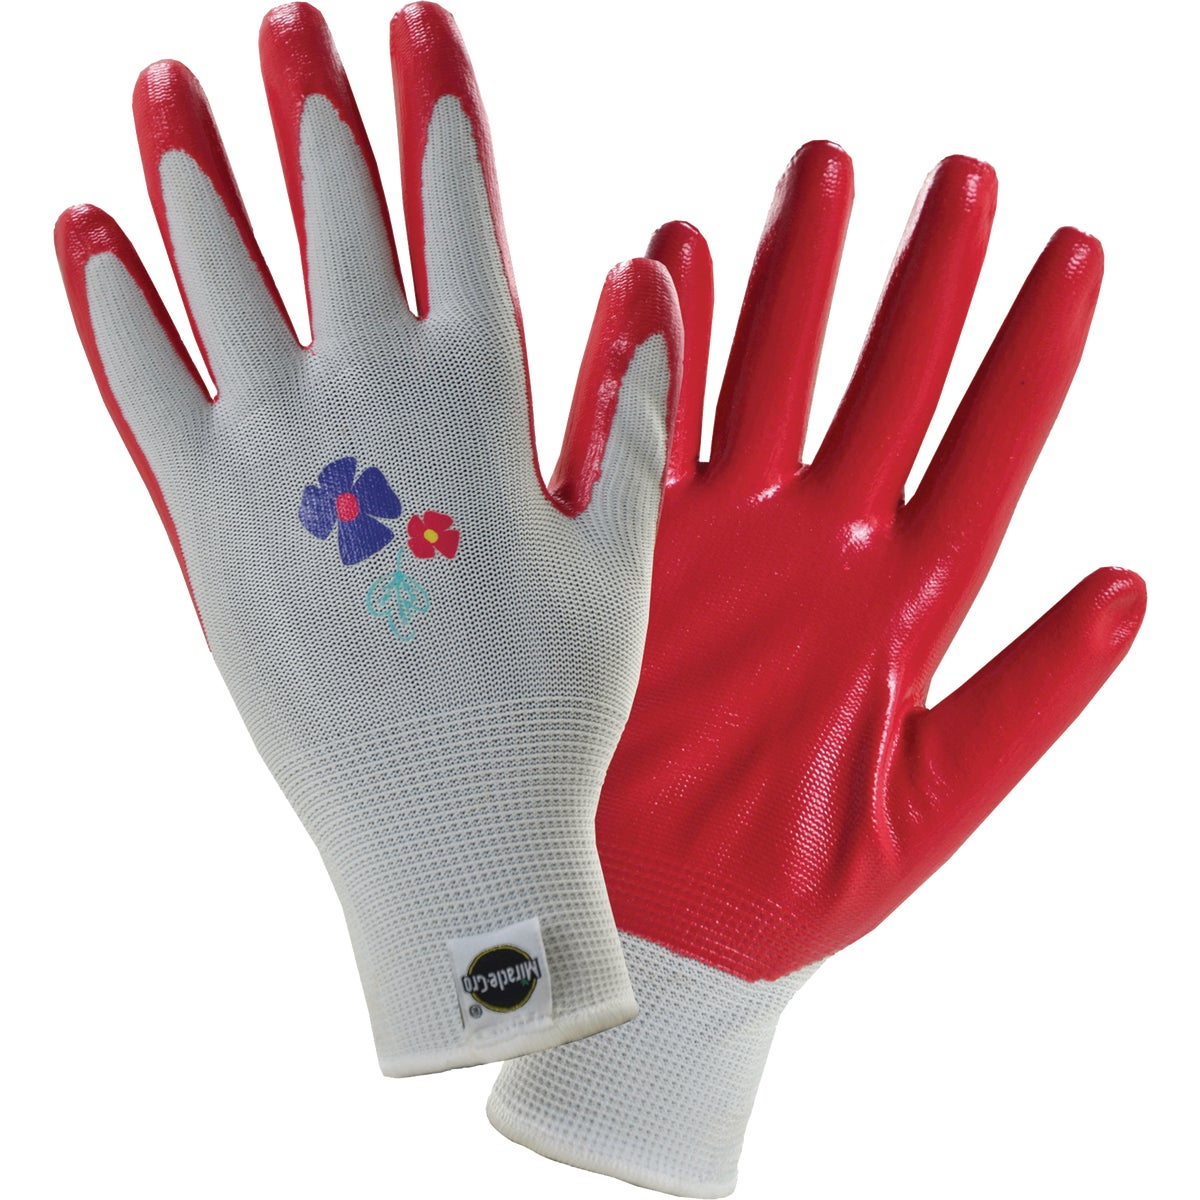 SML LADY NITR KNIT GLOVE - 536S by Wells Lamont